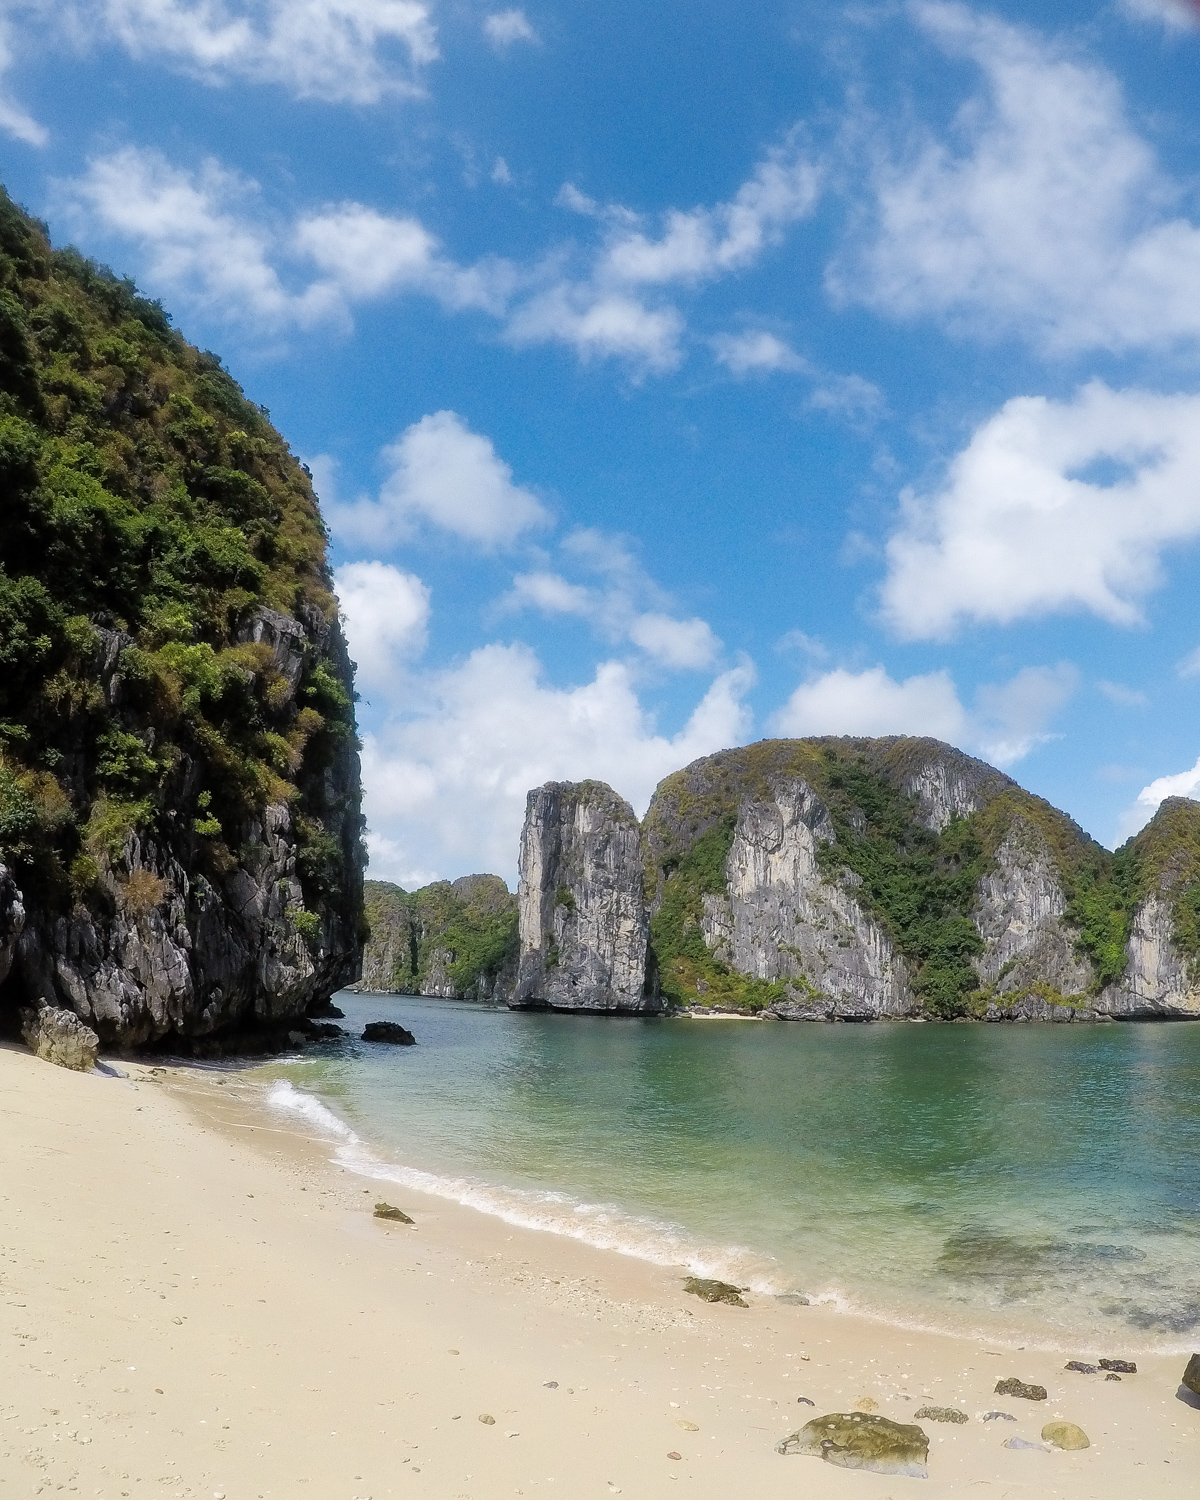 Just one of the beautiful beaches you can kayak to in Lan Ha Bay